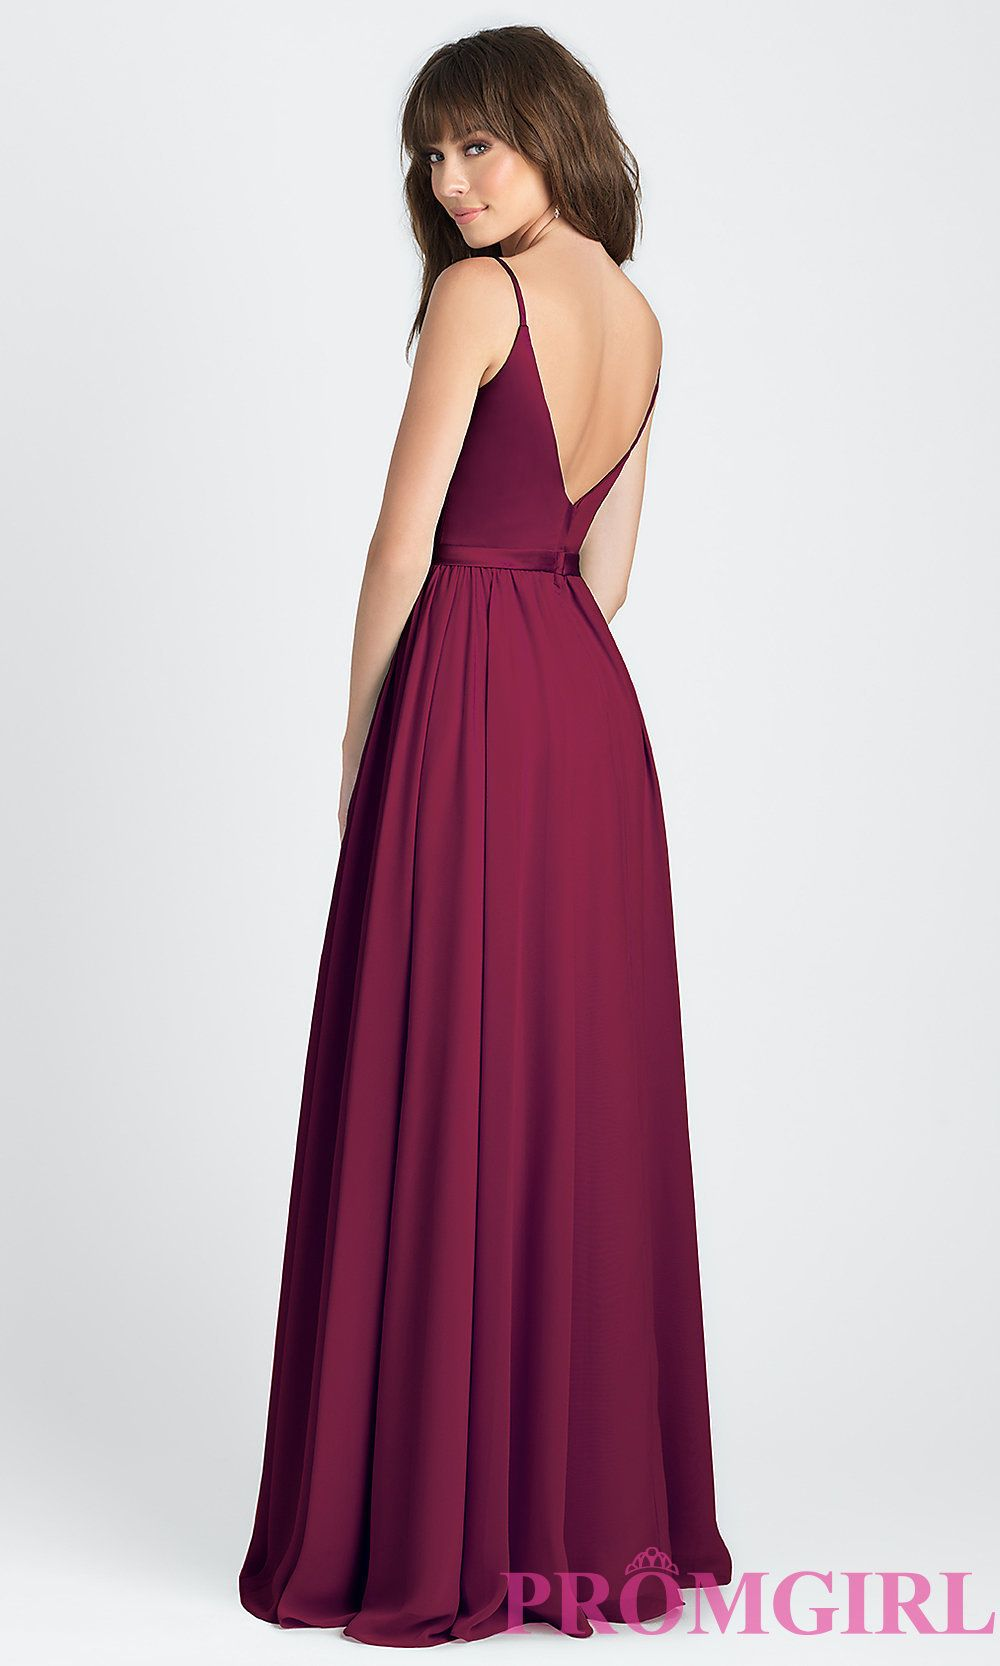 Classic A Line Long Prom Dress In Burgundy Red Prom Dresses Dresses Prom Dresses Long [ 1666 x 1000 Pixel ]